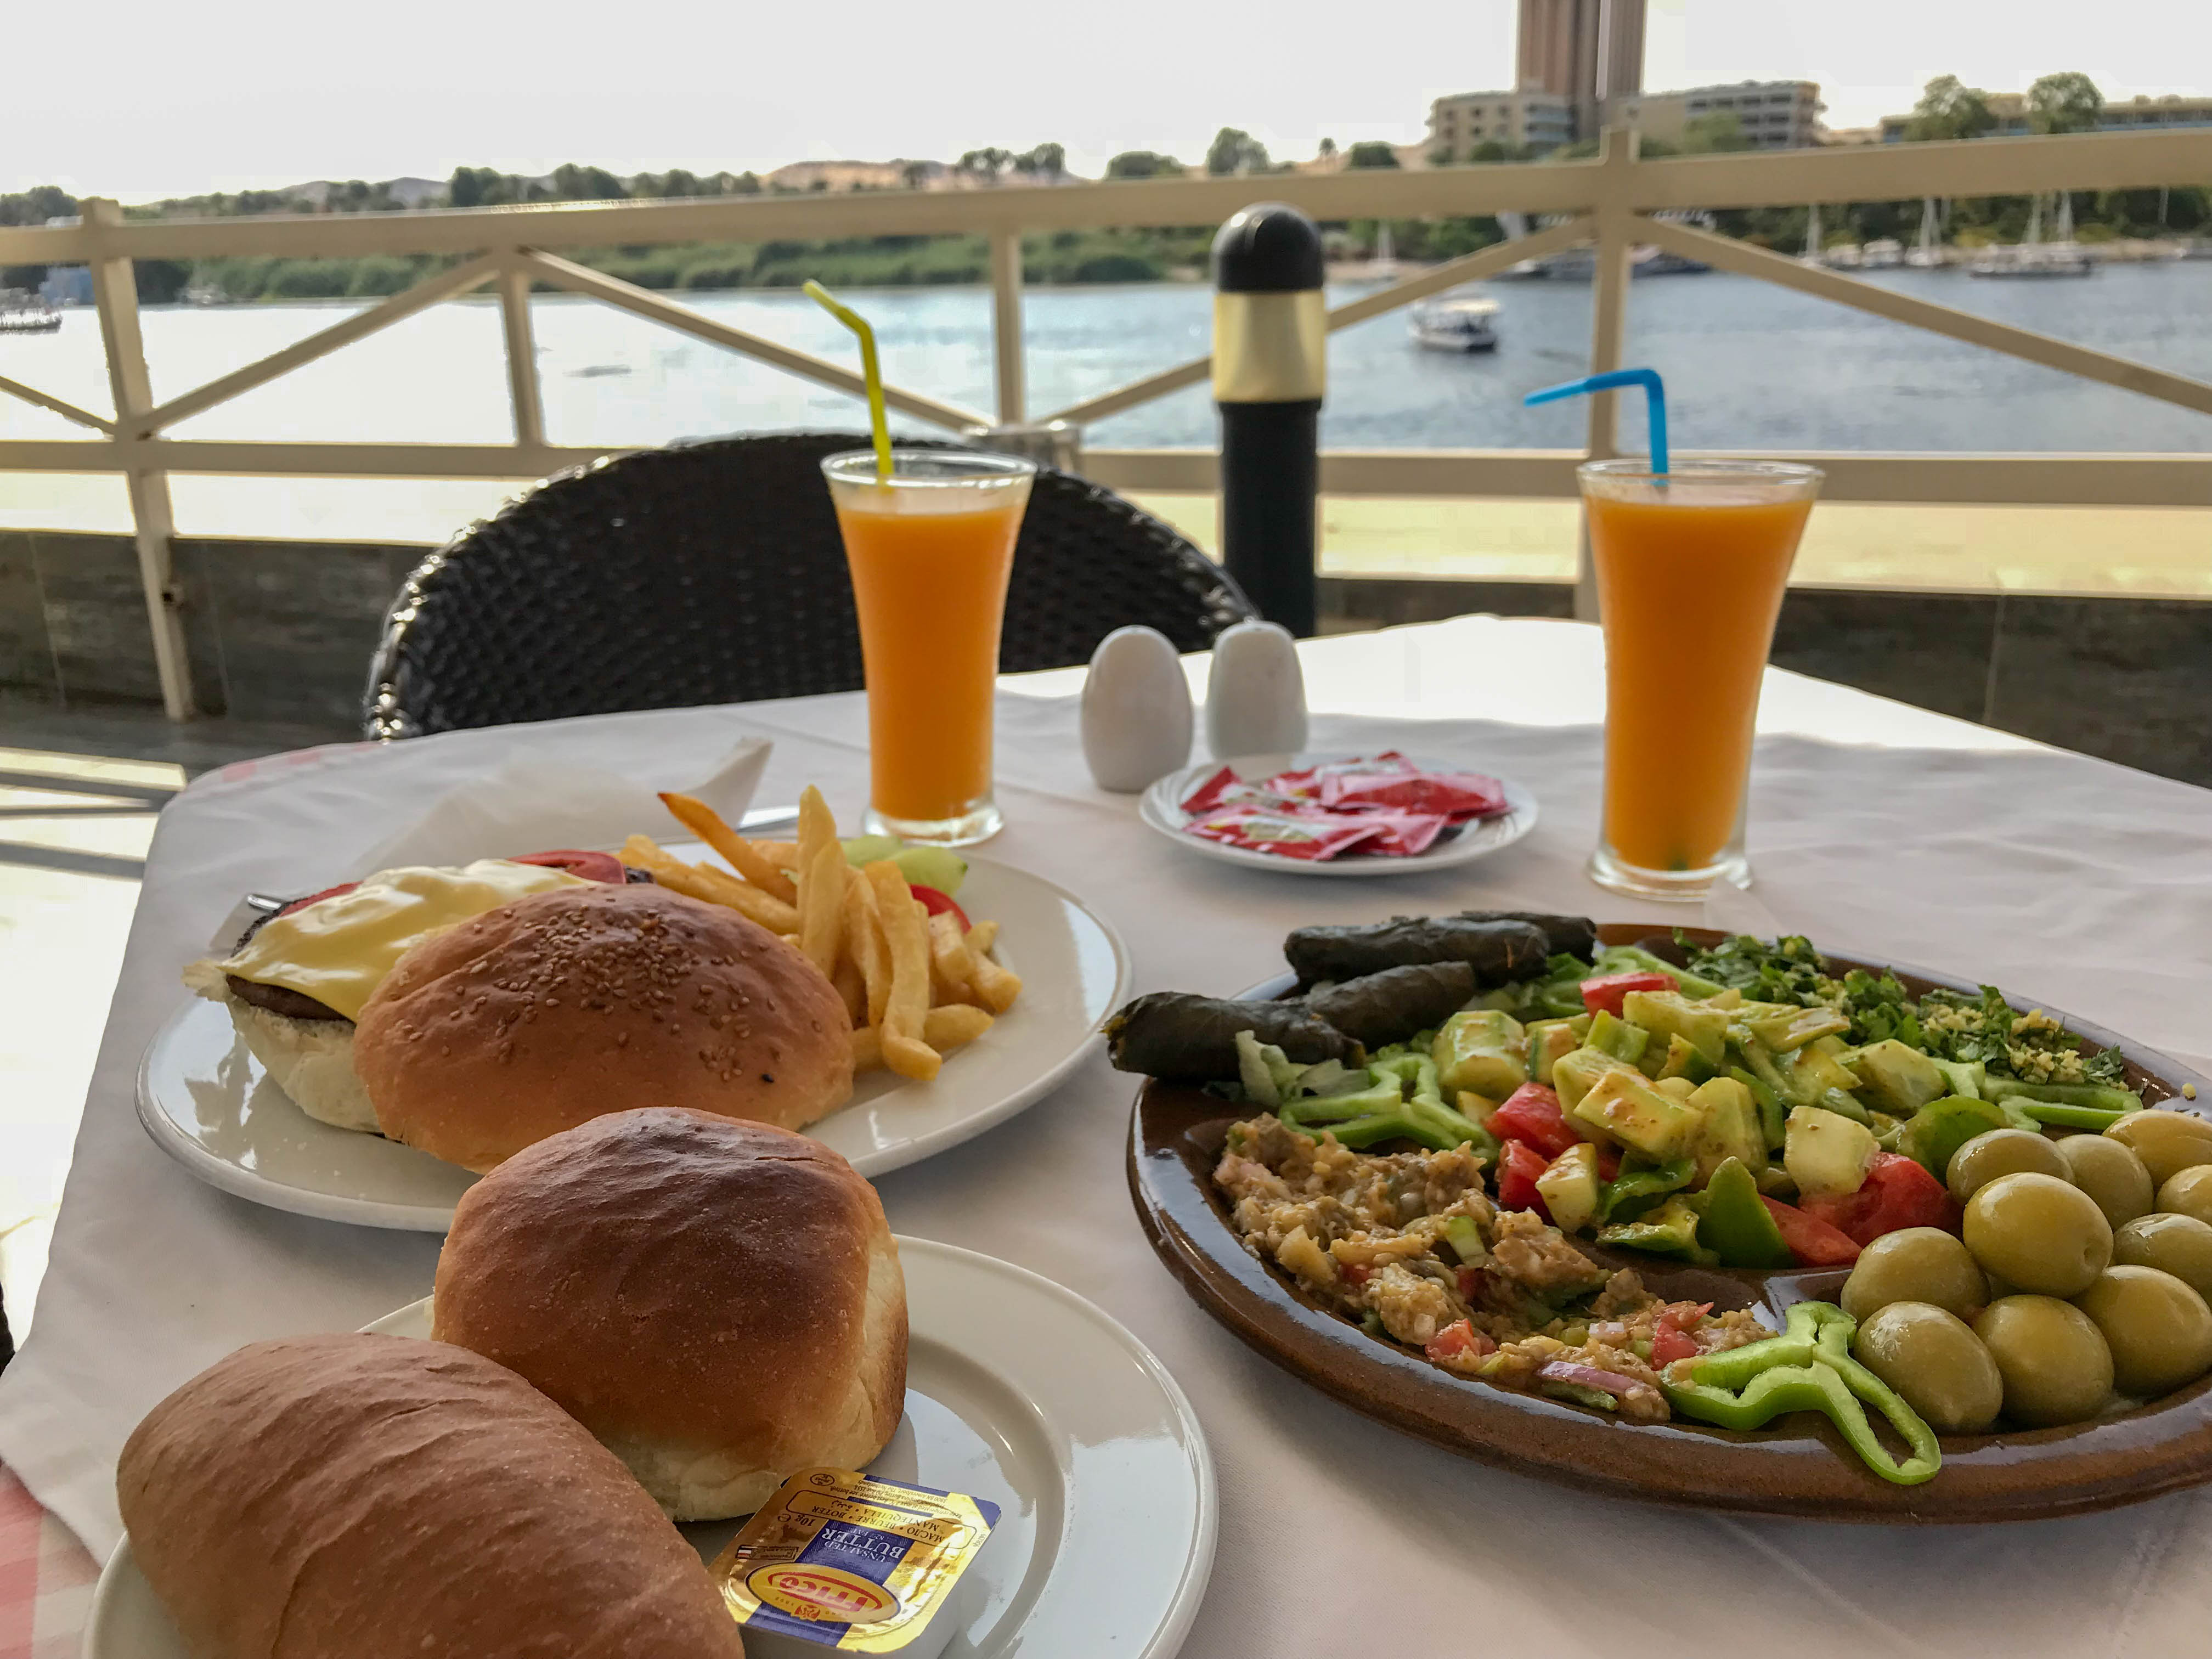 Mezze And Burgers, Lunch, Hotel Isis Corniche, Aswan, Egypt